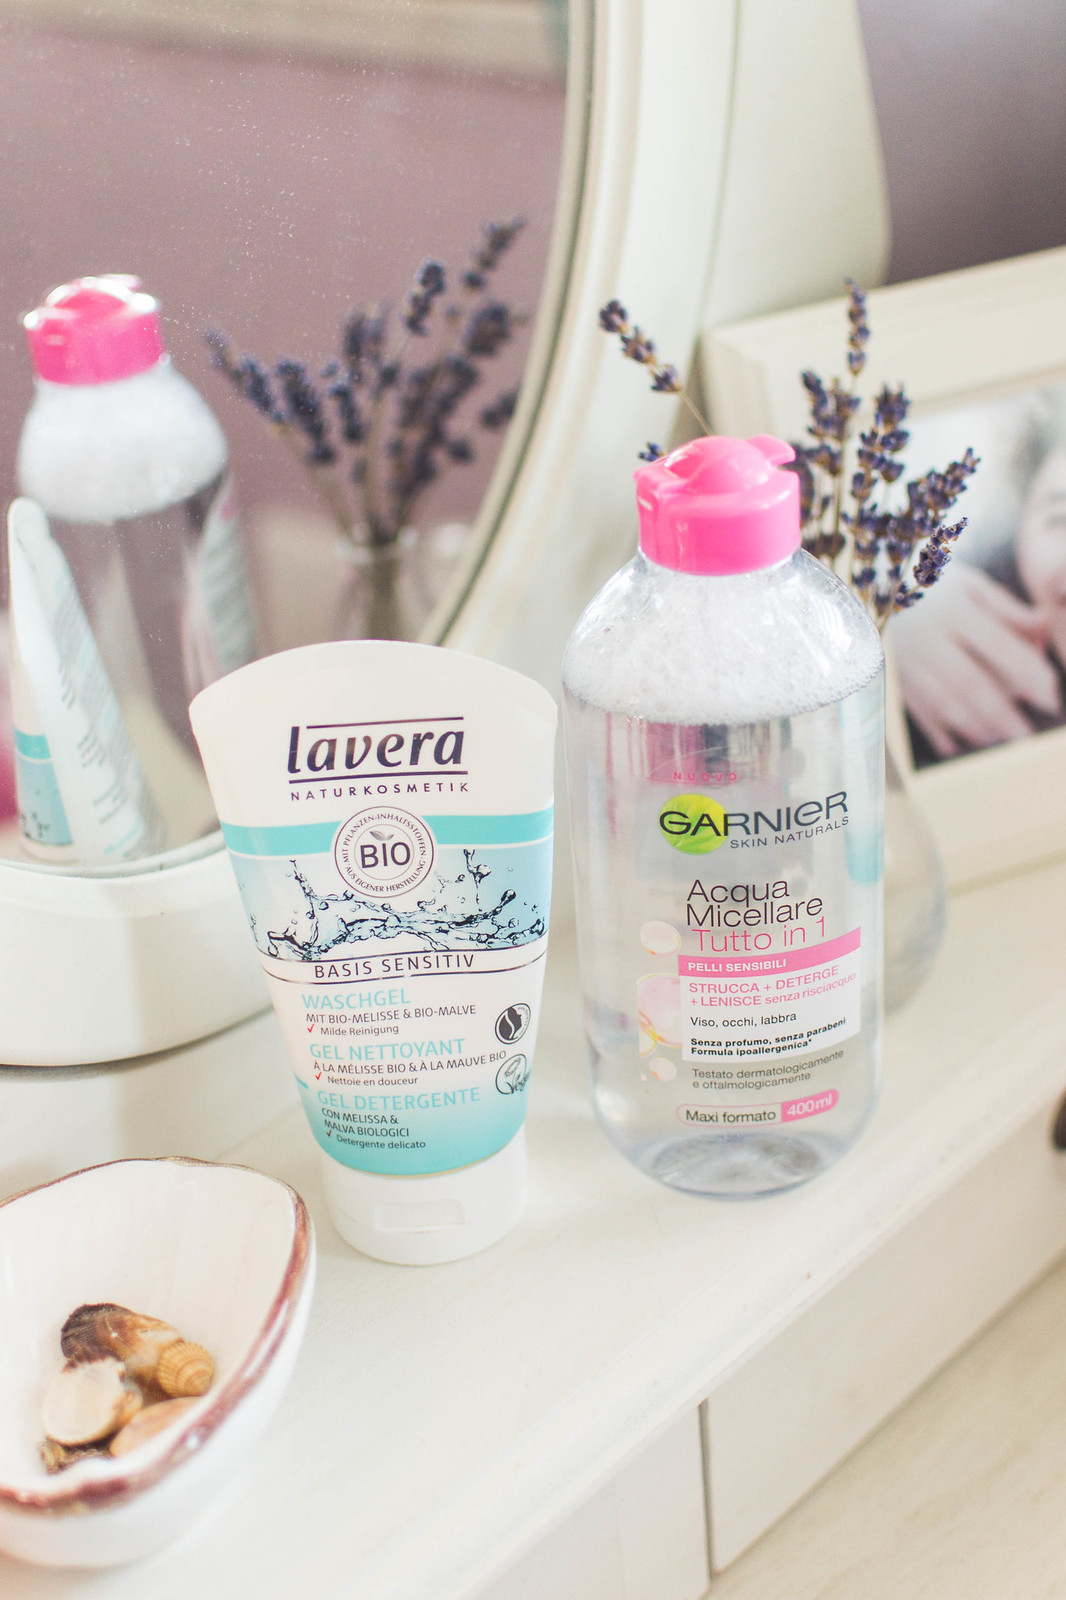 My Basic Skincare Routine including Lavera Basis Sensitive Cleansing Gel and Garnier Micellar Water